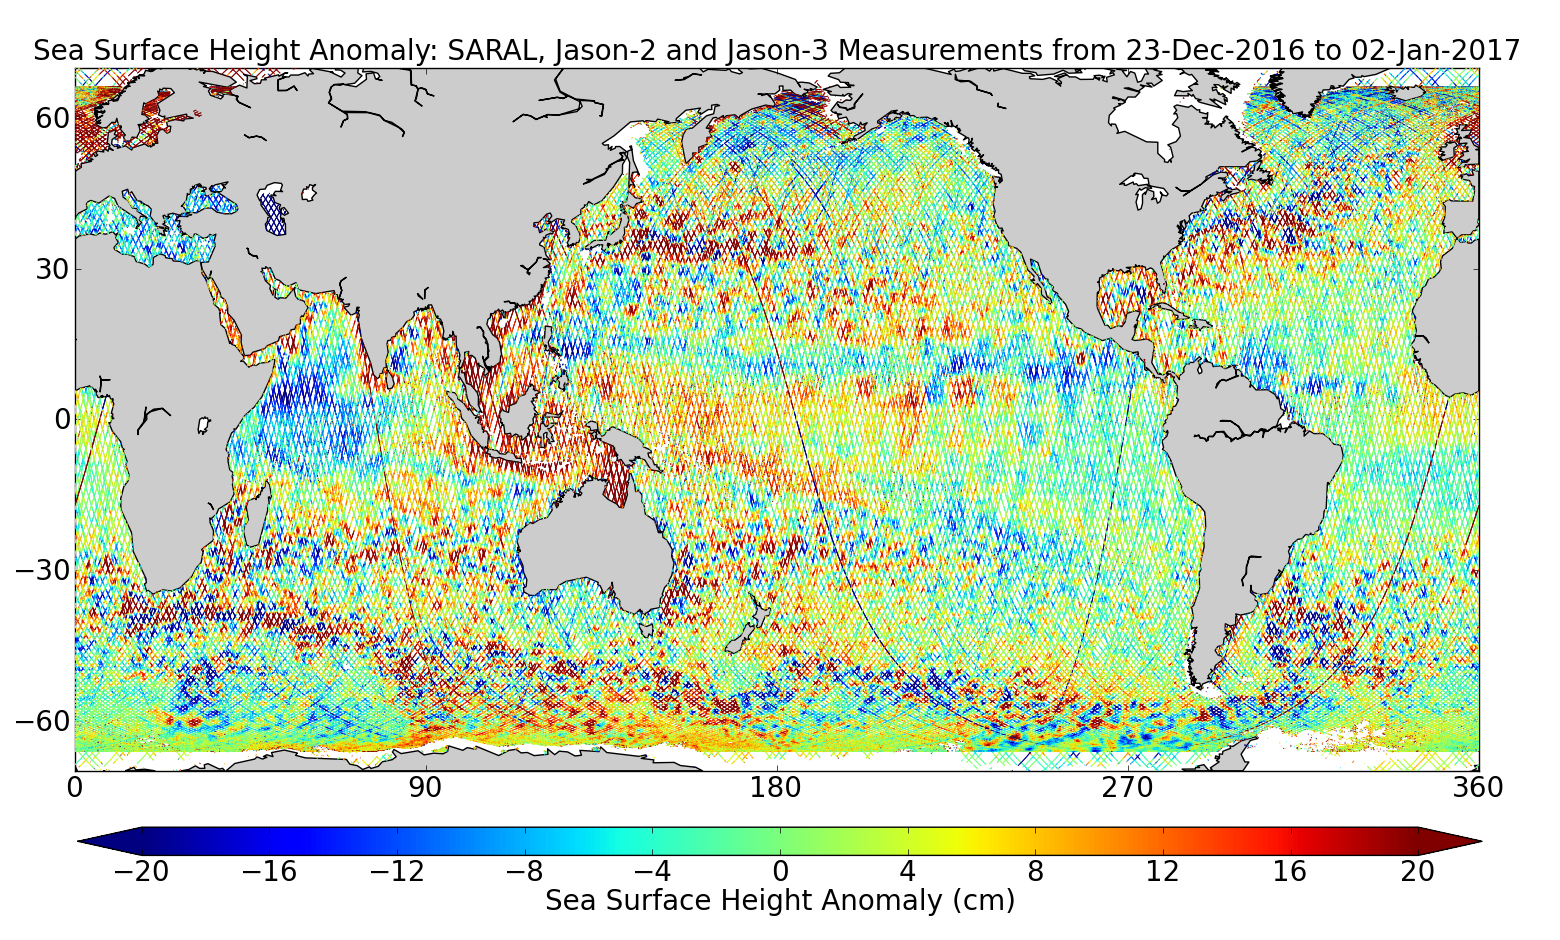 Sea Surface Height Anomaly: SARAL, Jason-2 and Jason-3 Measurements from 23-Dec-2016 to 02-Jan-2017